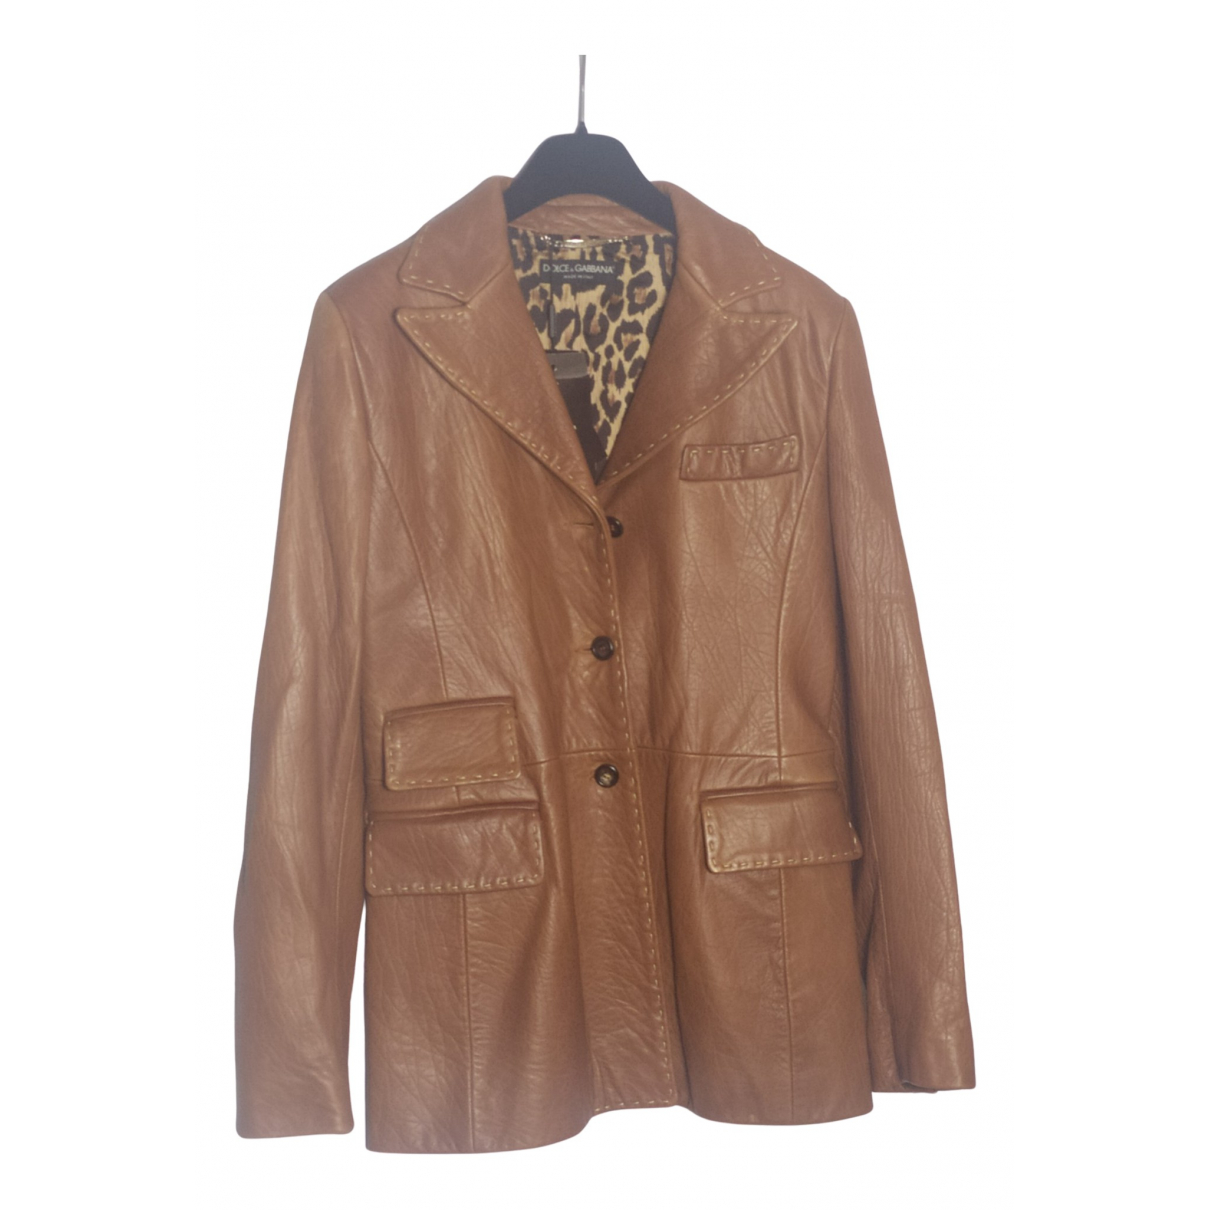 Dolce & Gabbana N Camel Leather jacket for Women 42 IT